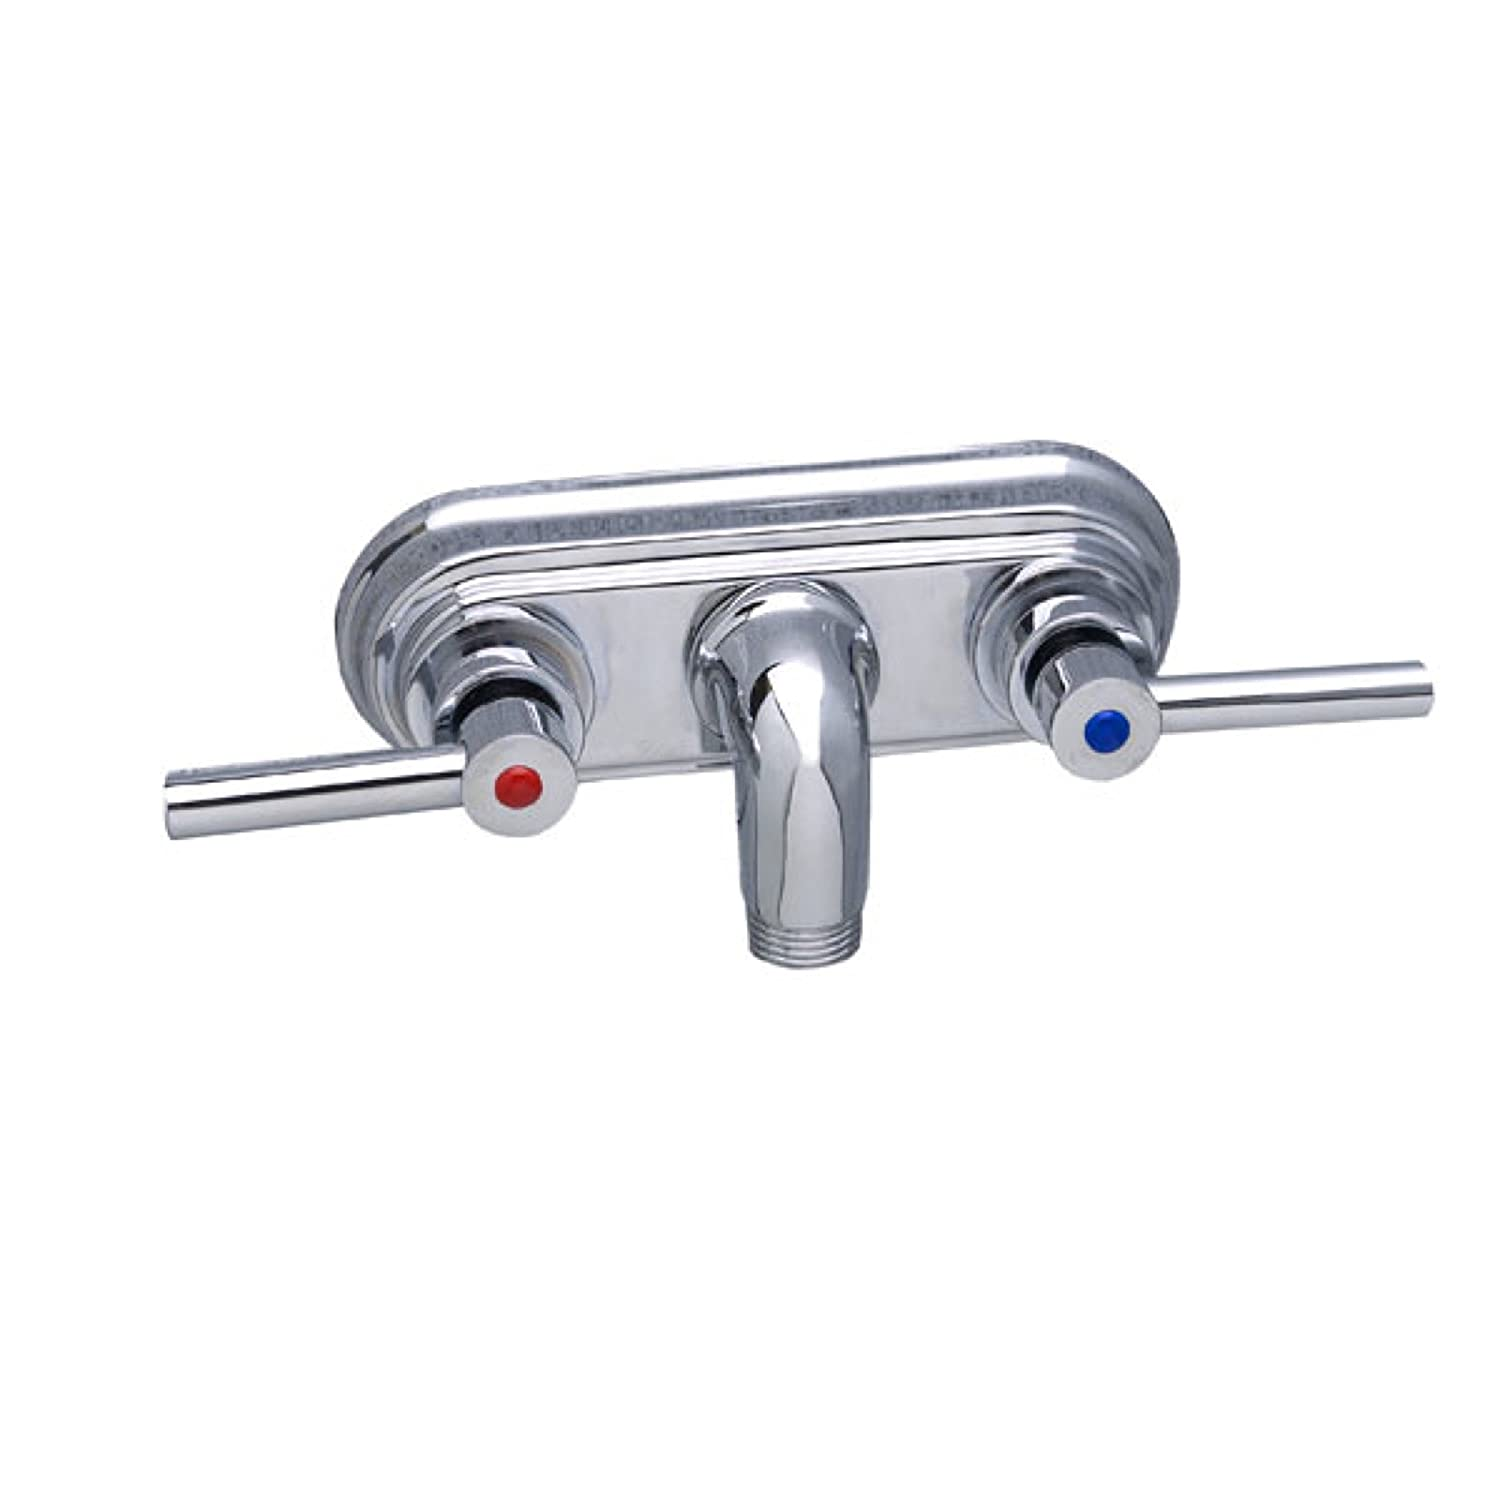 Master Equipment TP21740 Tub Faucets-Durable and Innovative for Dog Grooming Tubs